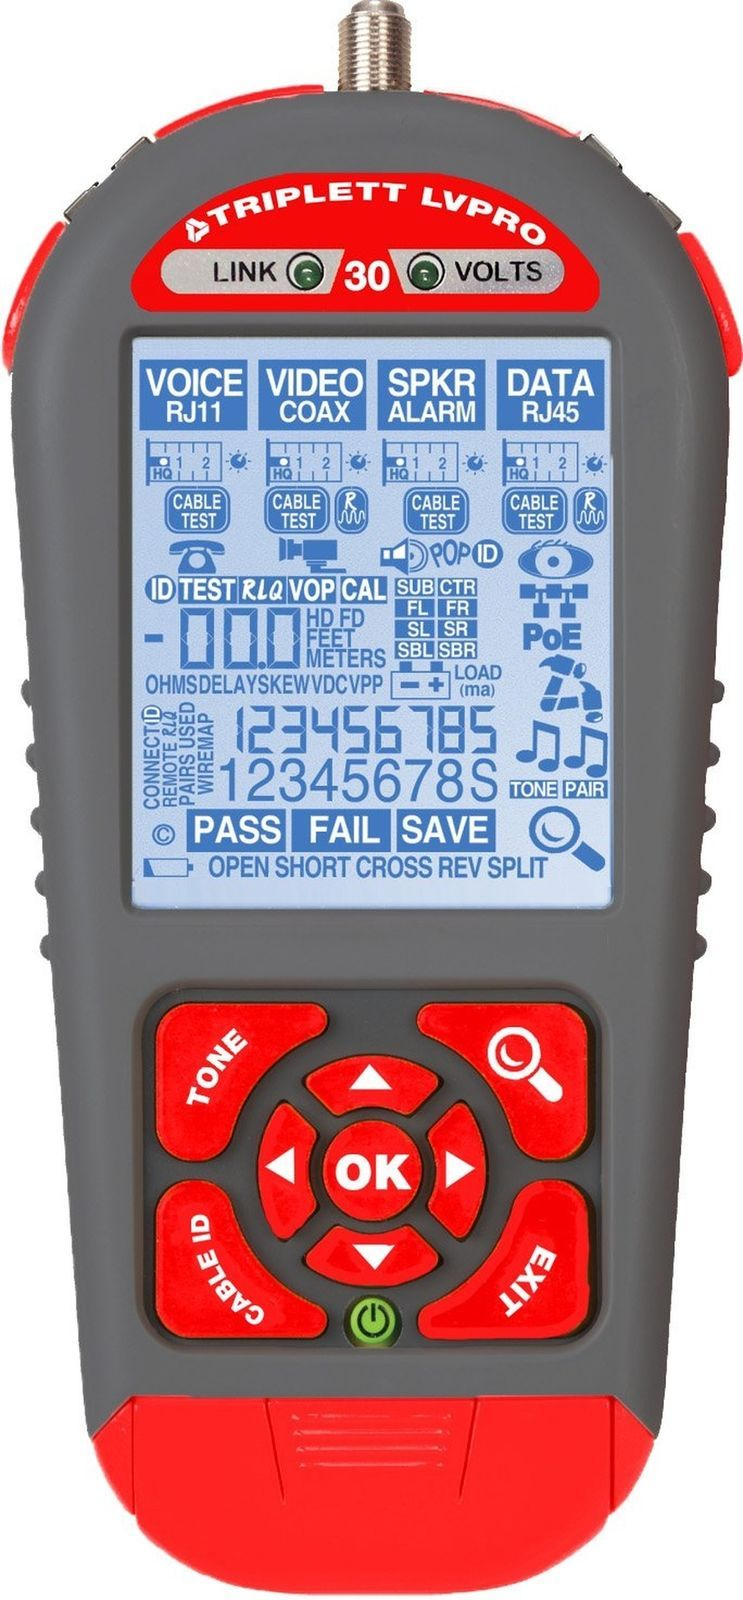 hight resolution of lvpro30 low voltage network cable tester w 12 apps for all wire types triplett ebay